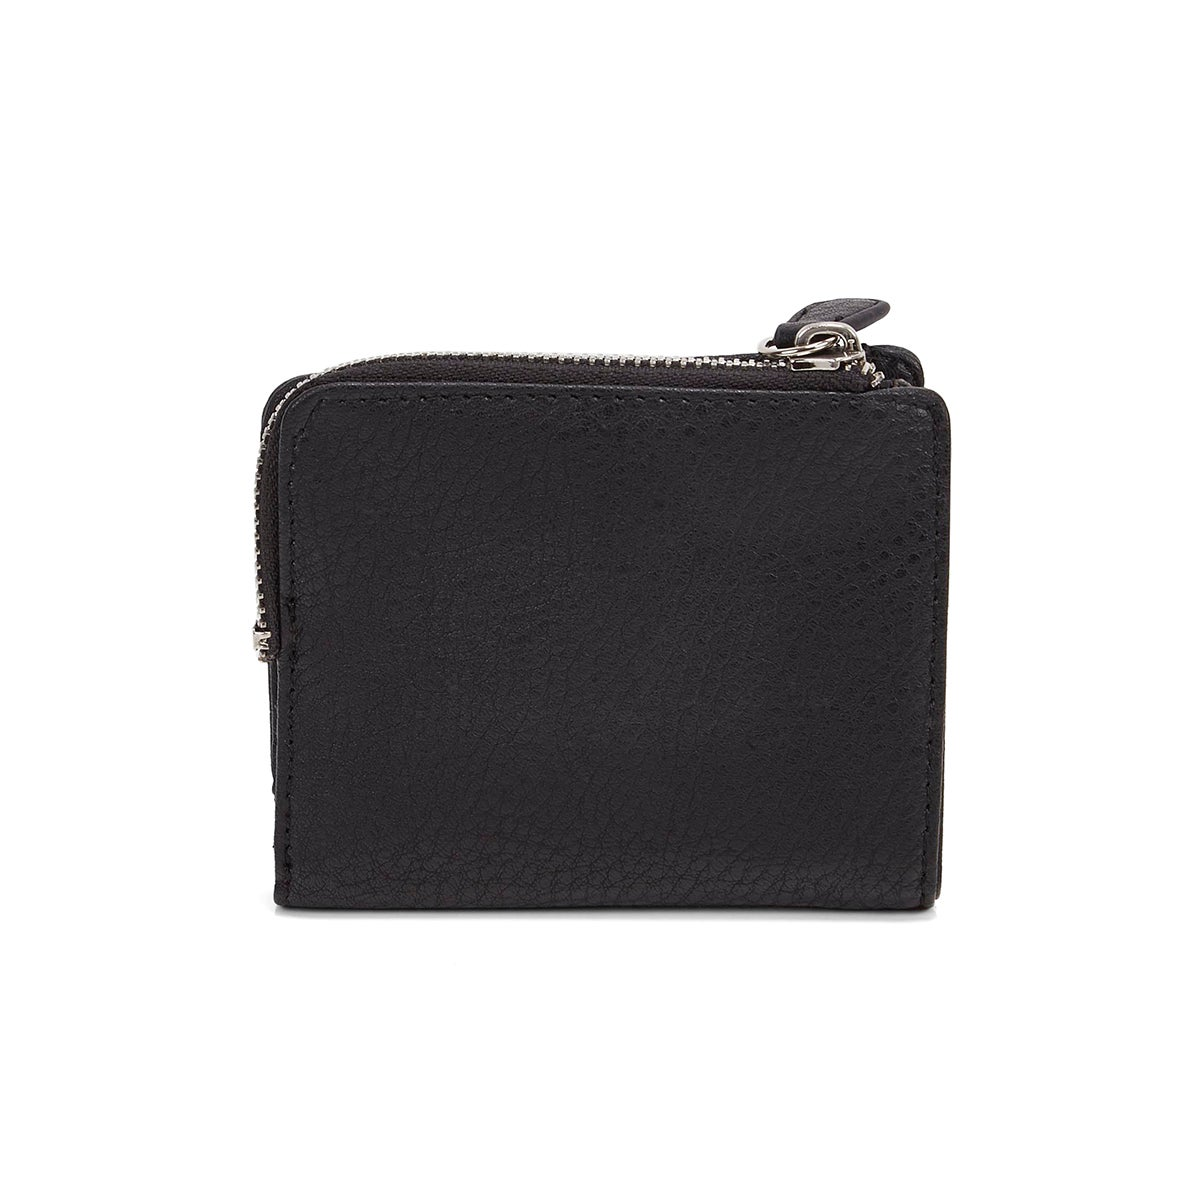 Mns Gun Powder black top zip wallet